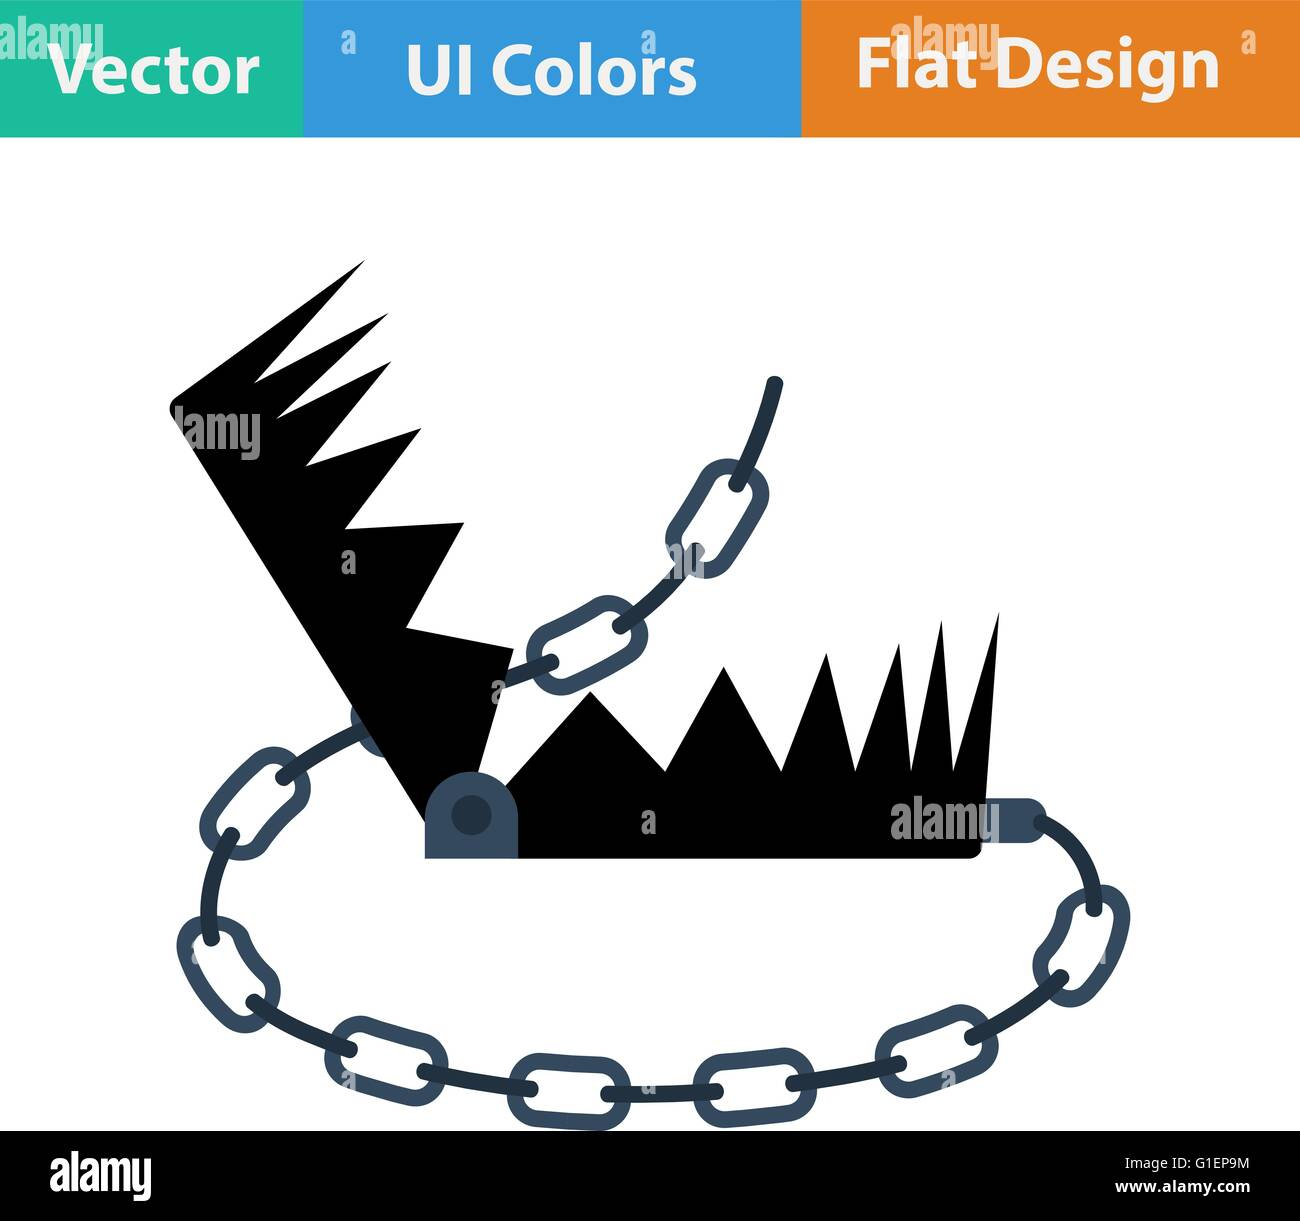 hight resolution of flat design icon of bear hunting trap in ui colors vector illustration